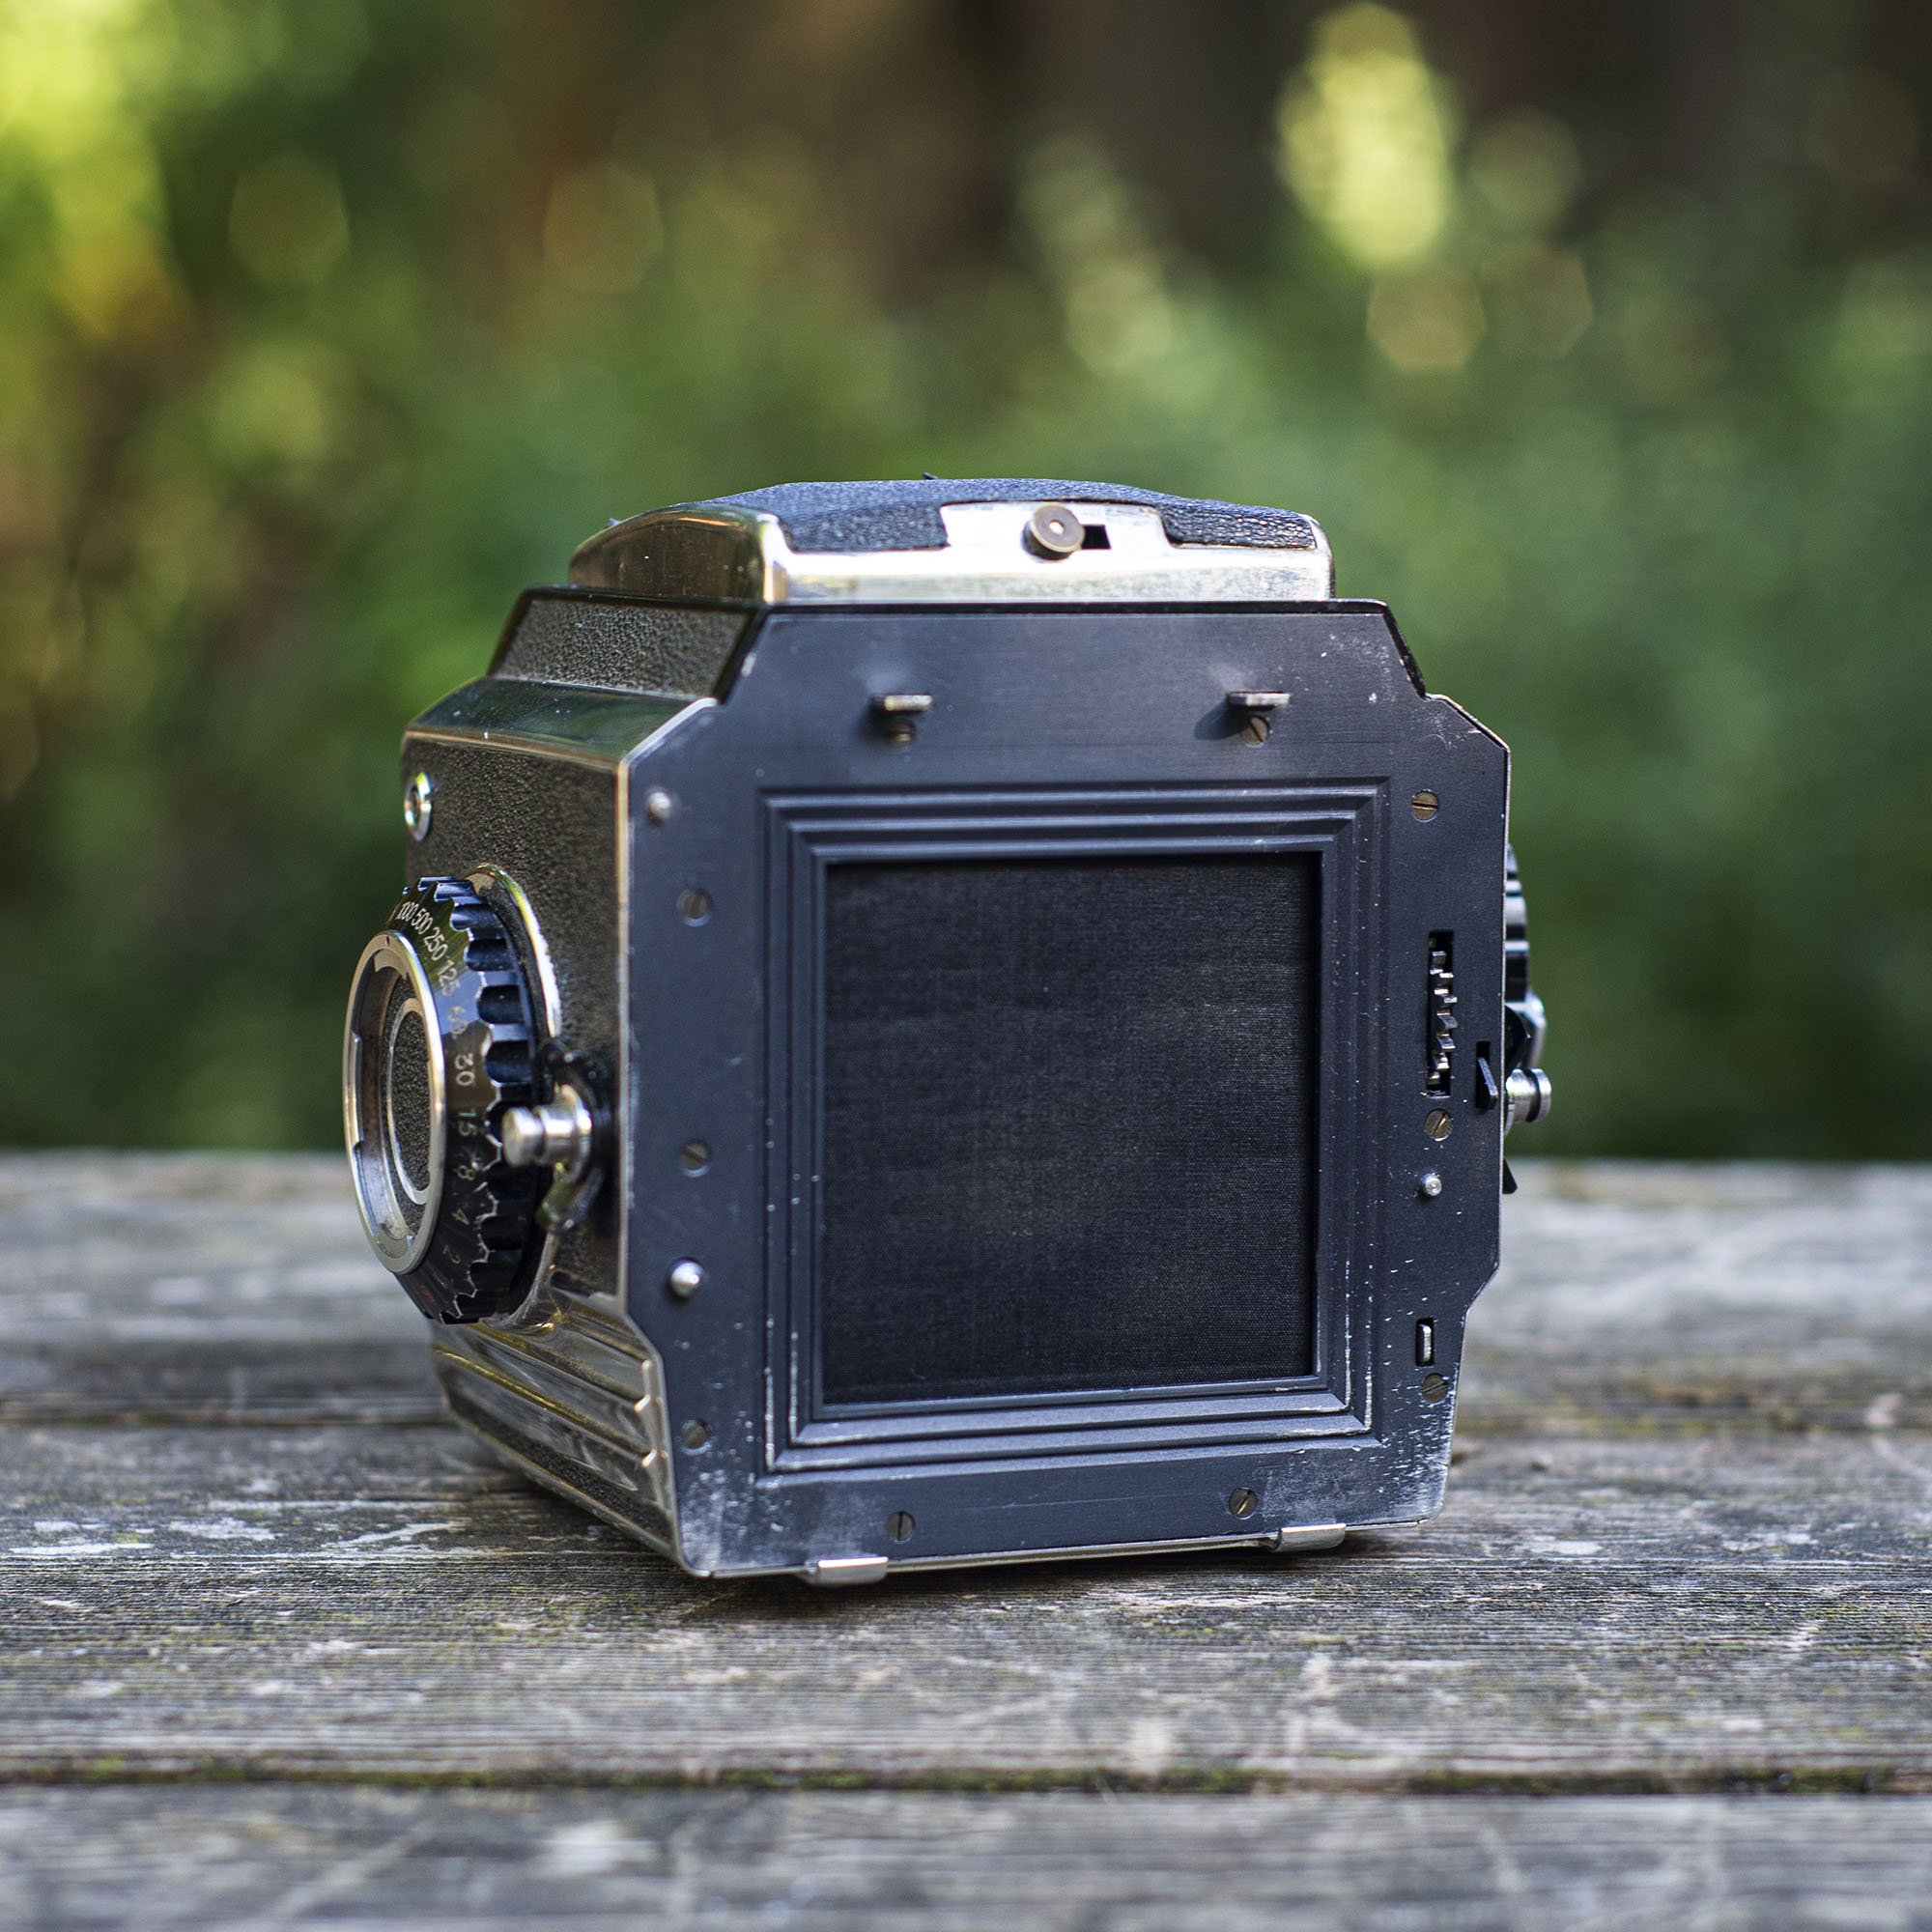 Bronica S2 with the film back off showing the rear curtain